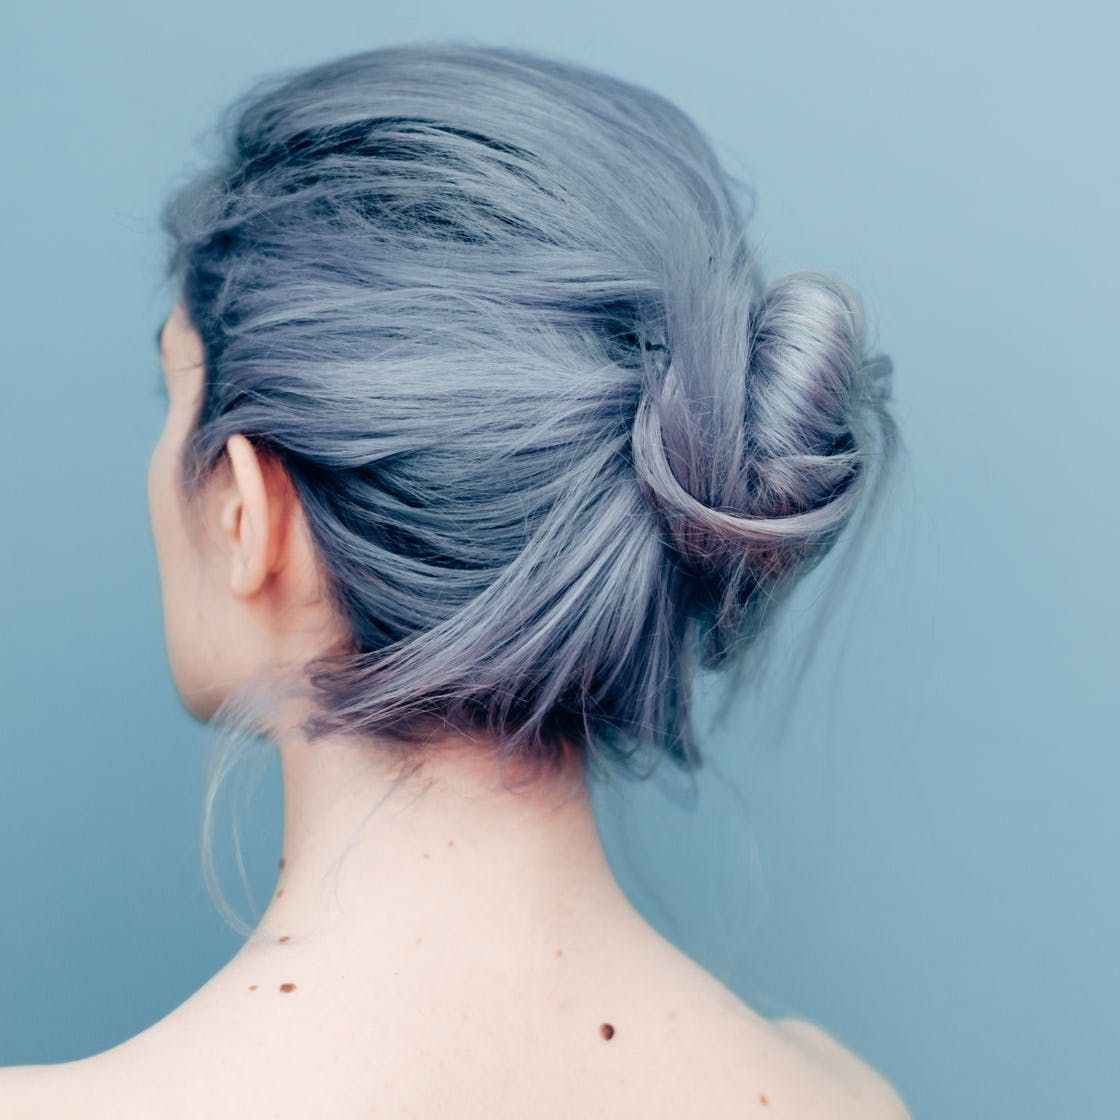 5 Things You Need To Know About Colouring Your Hair At